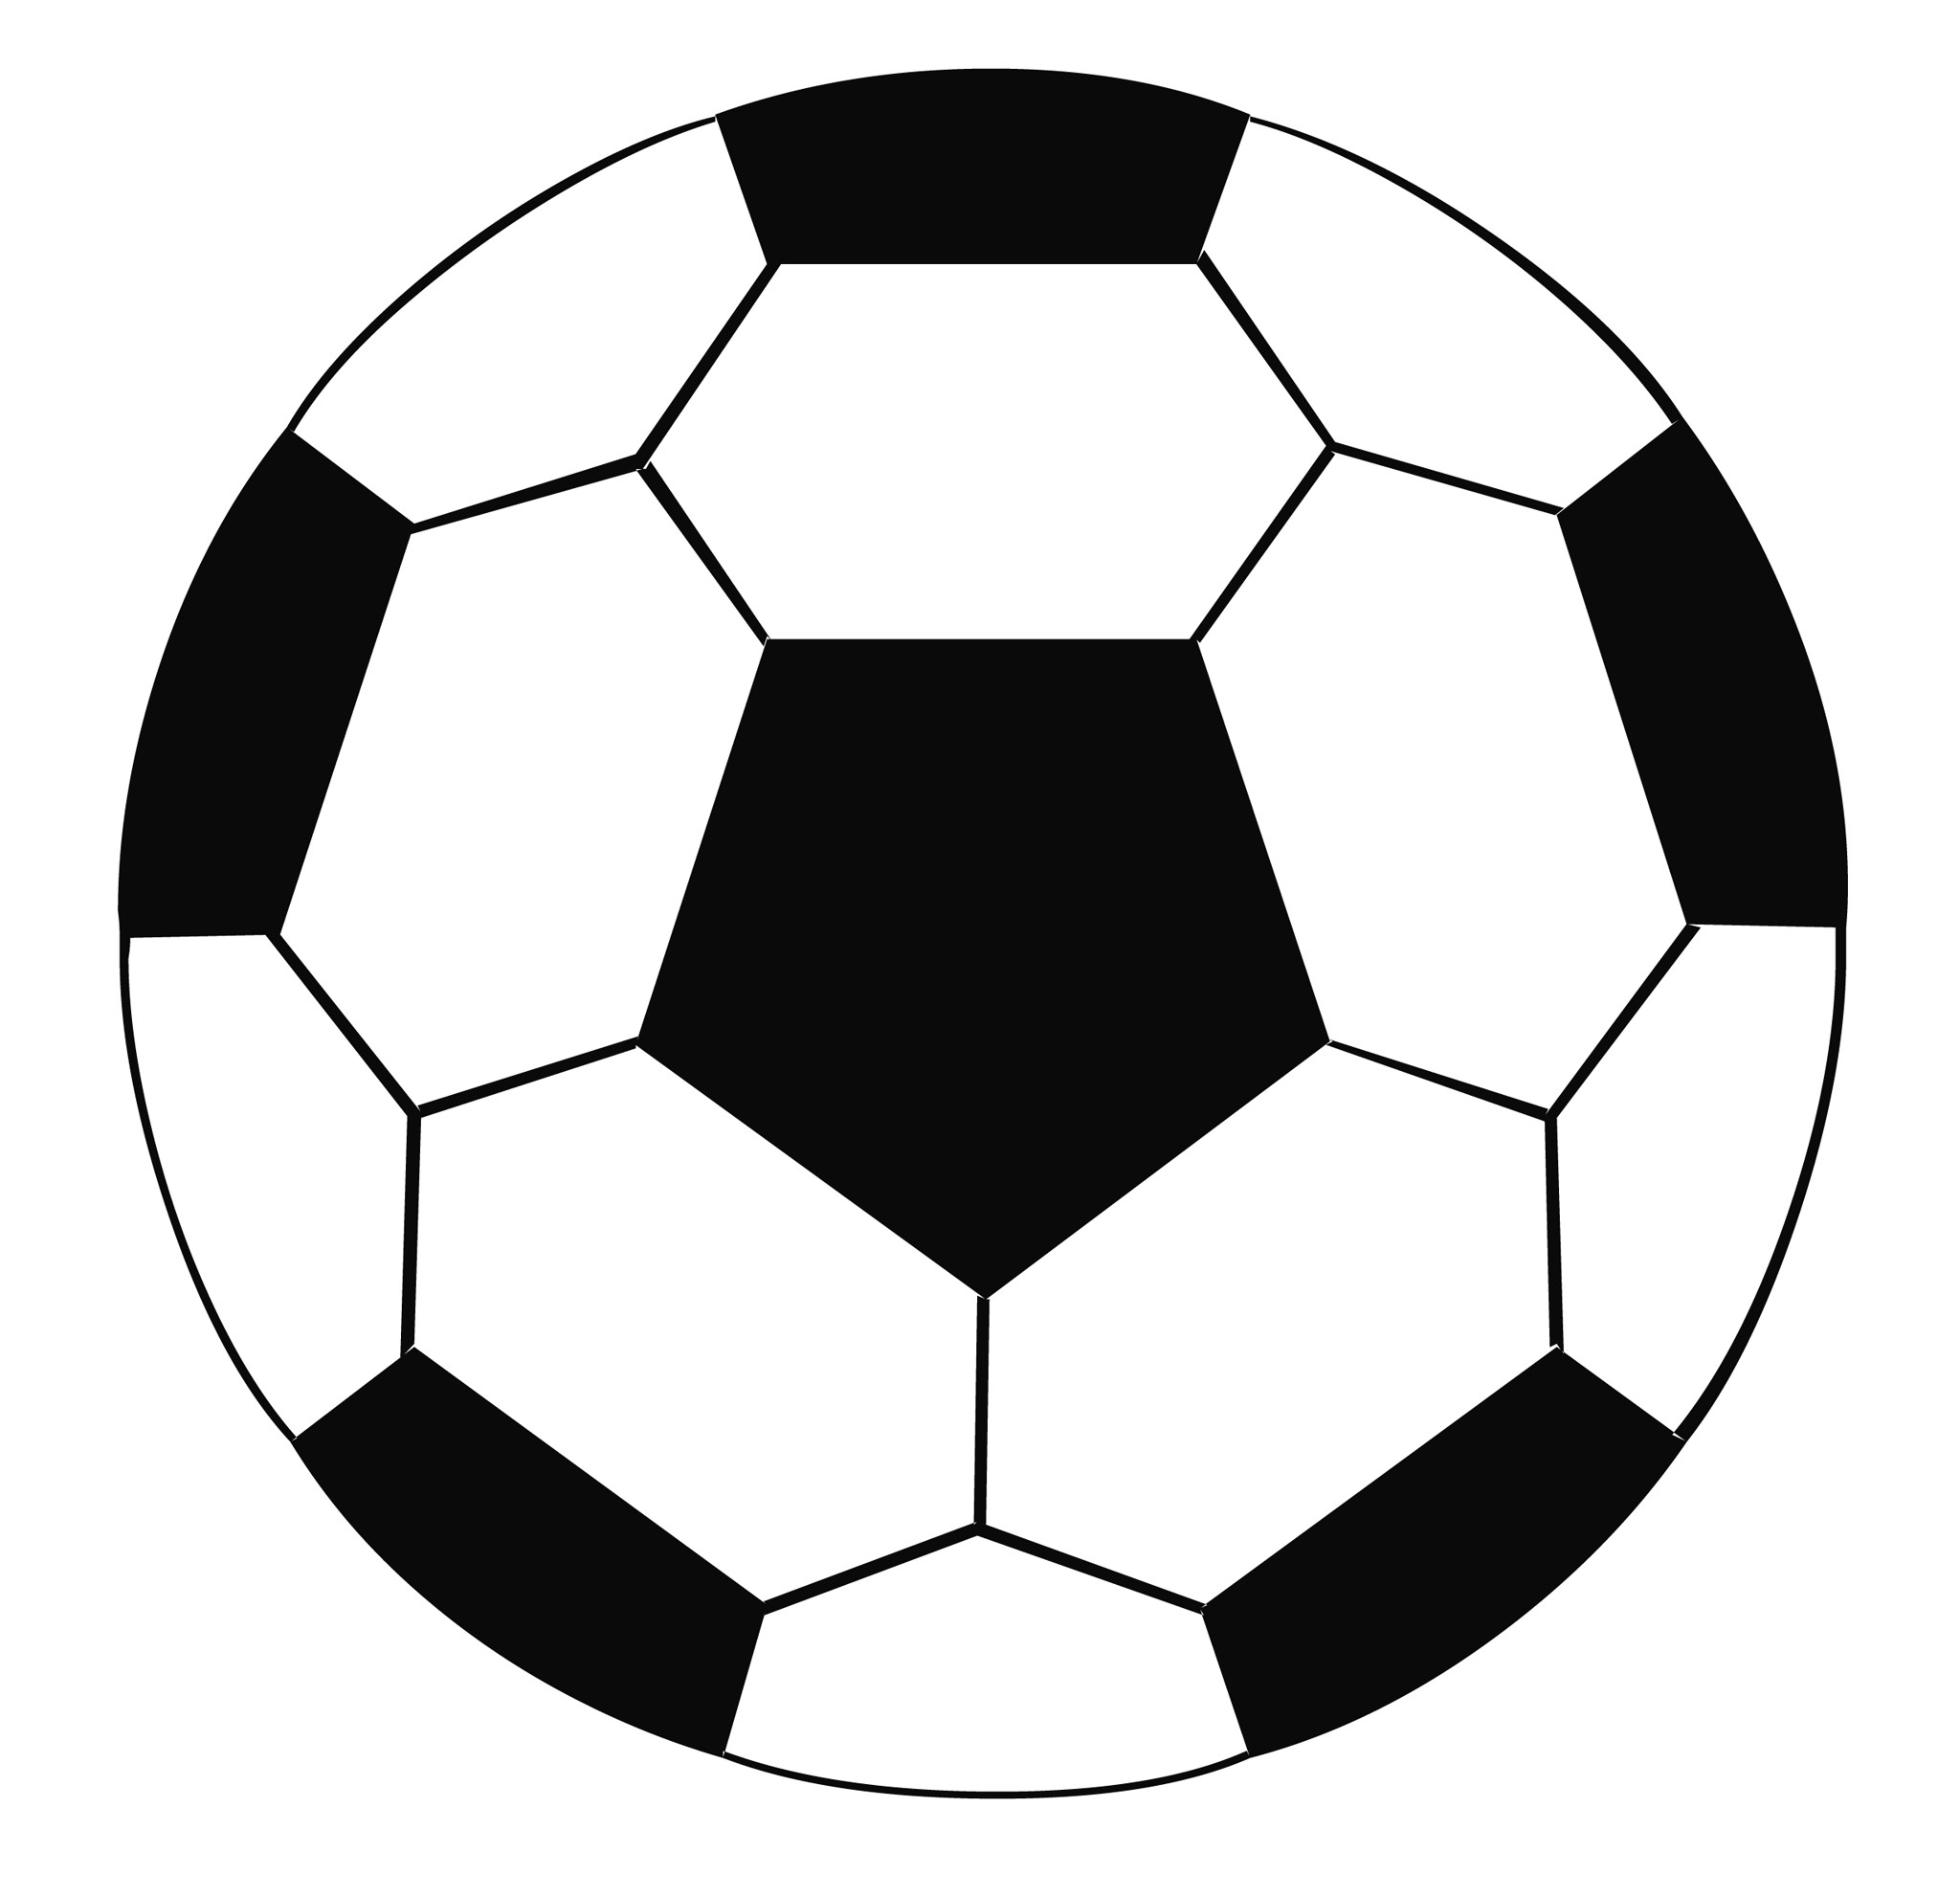 Soccer ball football ball images clipart image #472 (2048 x 1982 Pixel)